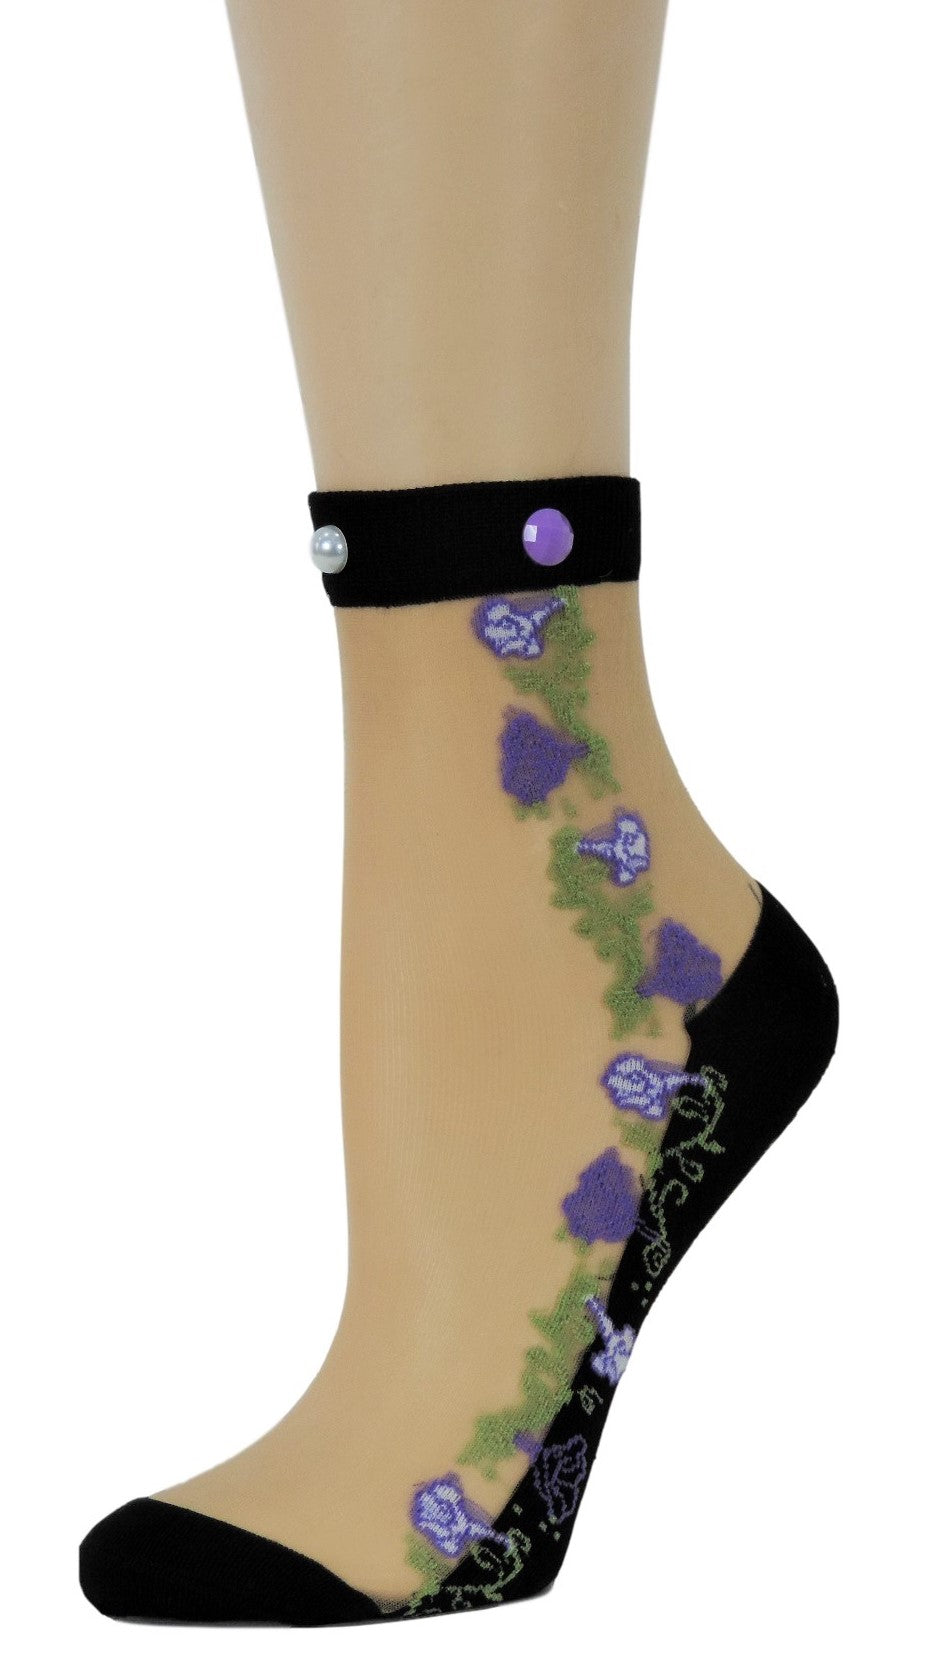 Exciting Purple Flowers Custom Sheer Socks with beads - Global Trendz Fashion®